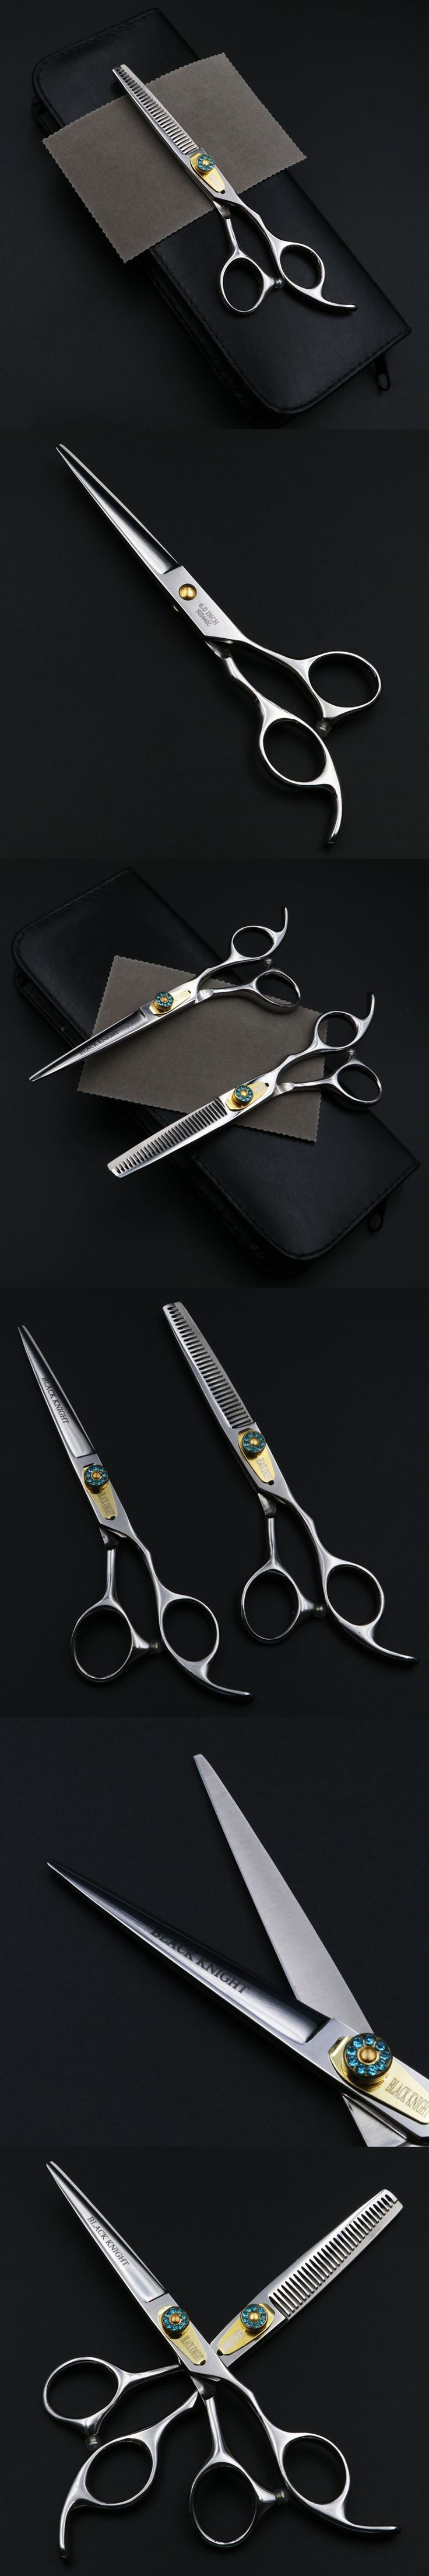 6 inch Professional Hairdressing scissors set Cutting+Thinning Barber Salon shears High quality Personality